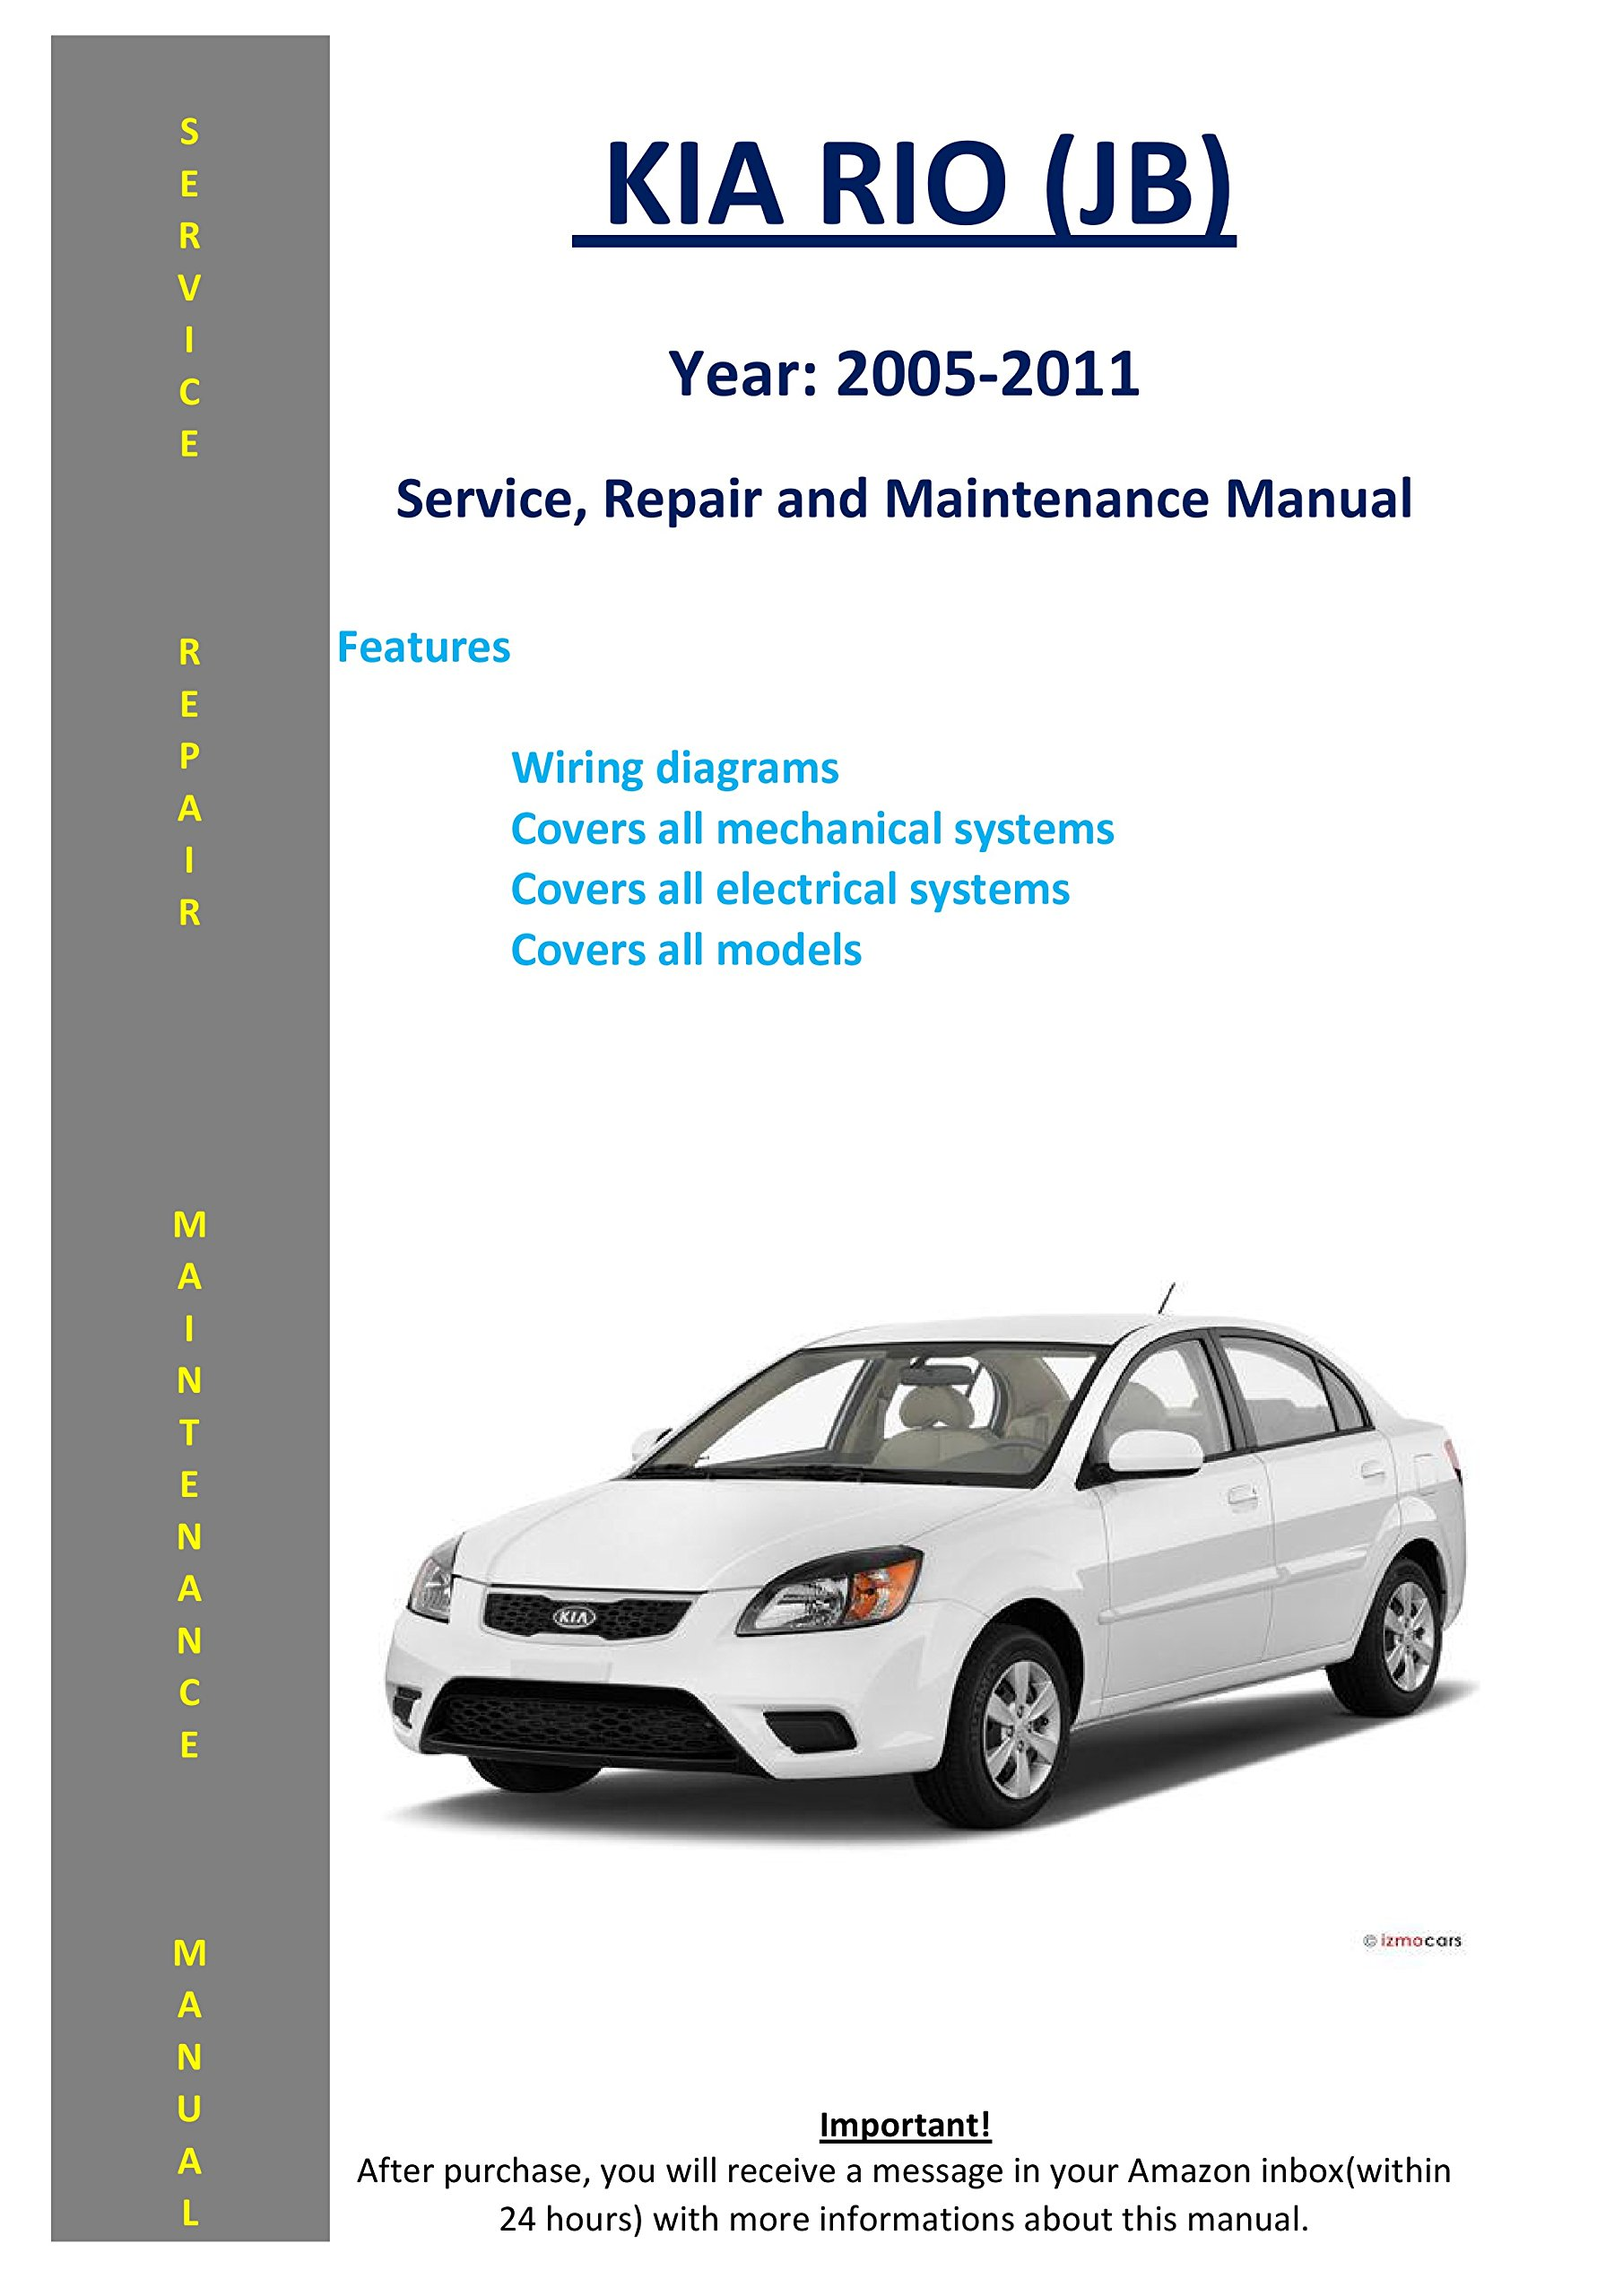 kia maintenance manuals